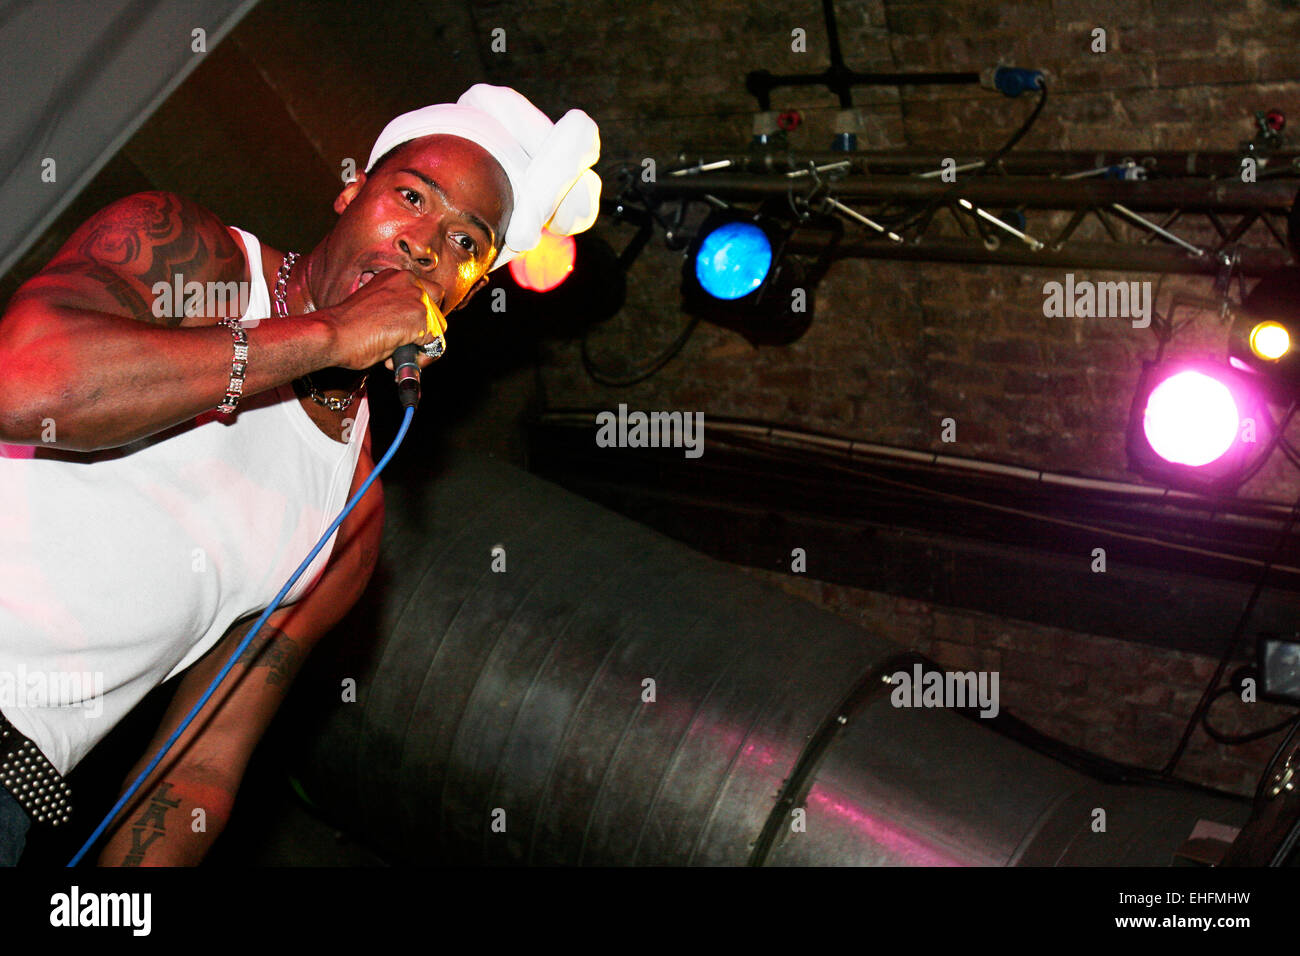 Felix from Oblit-r8 at UK Street Sounds at Cargo London. - Stock Image